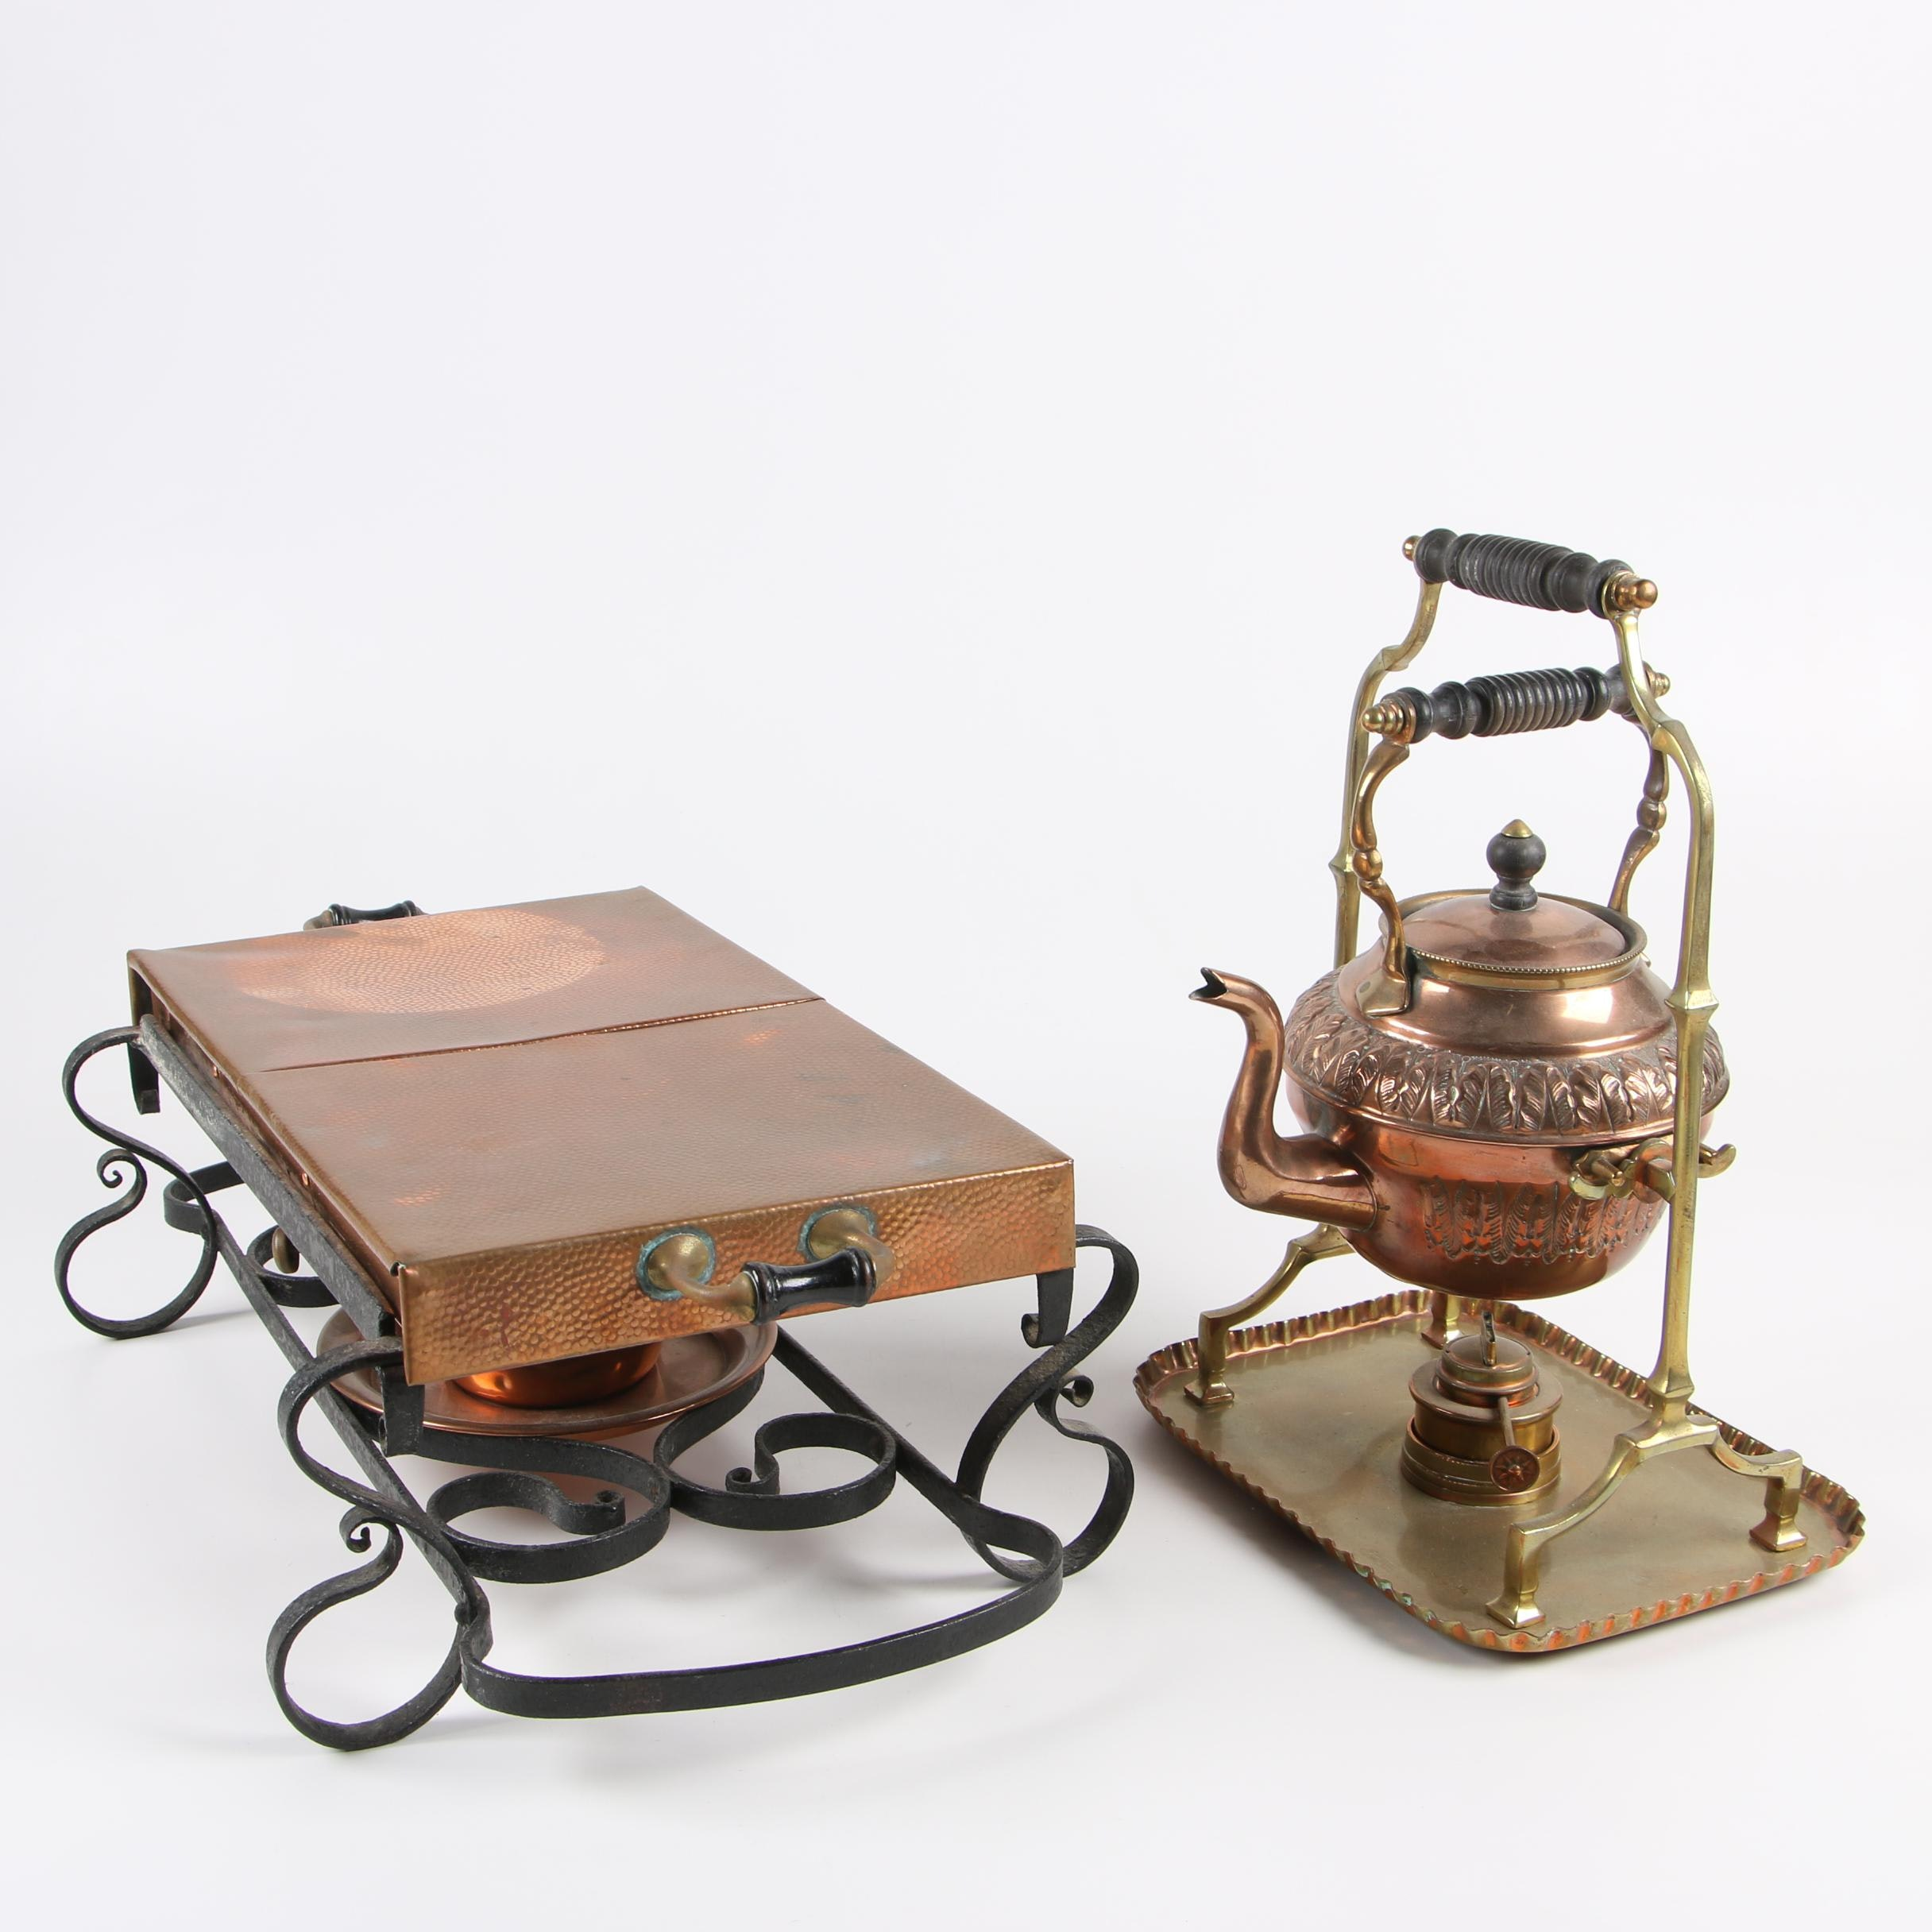 Townshend Ltd. Copper and Brass Food Warming Tray and Tilting Tea Kettle